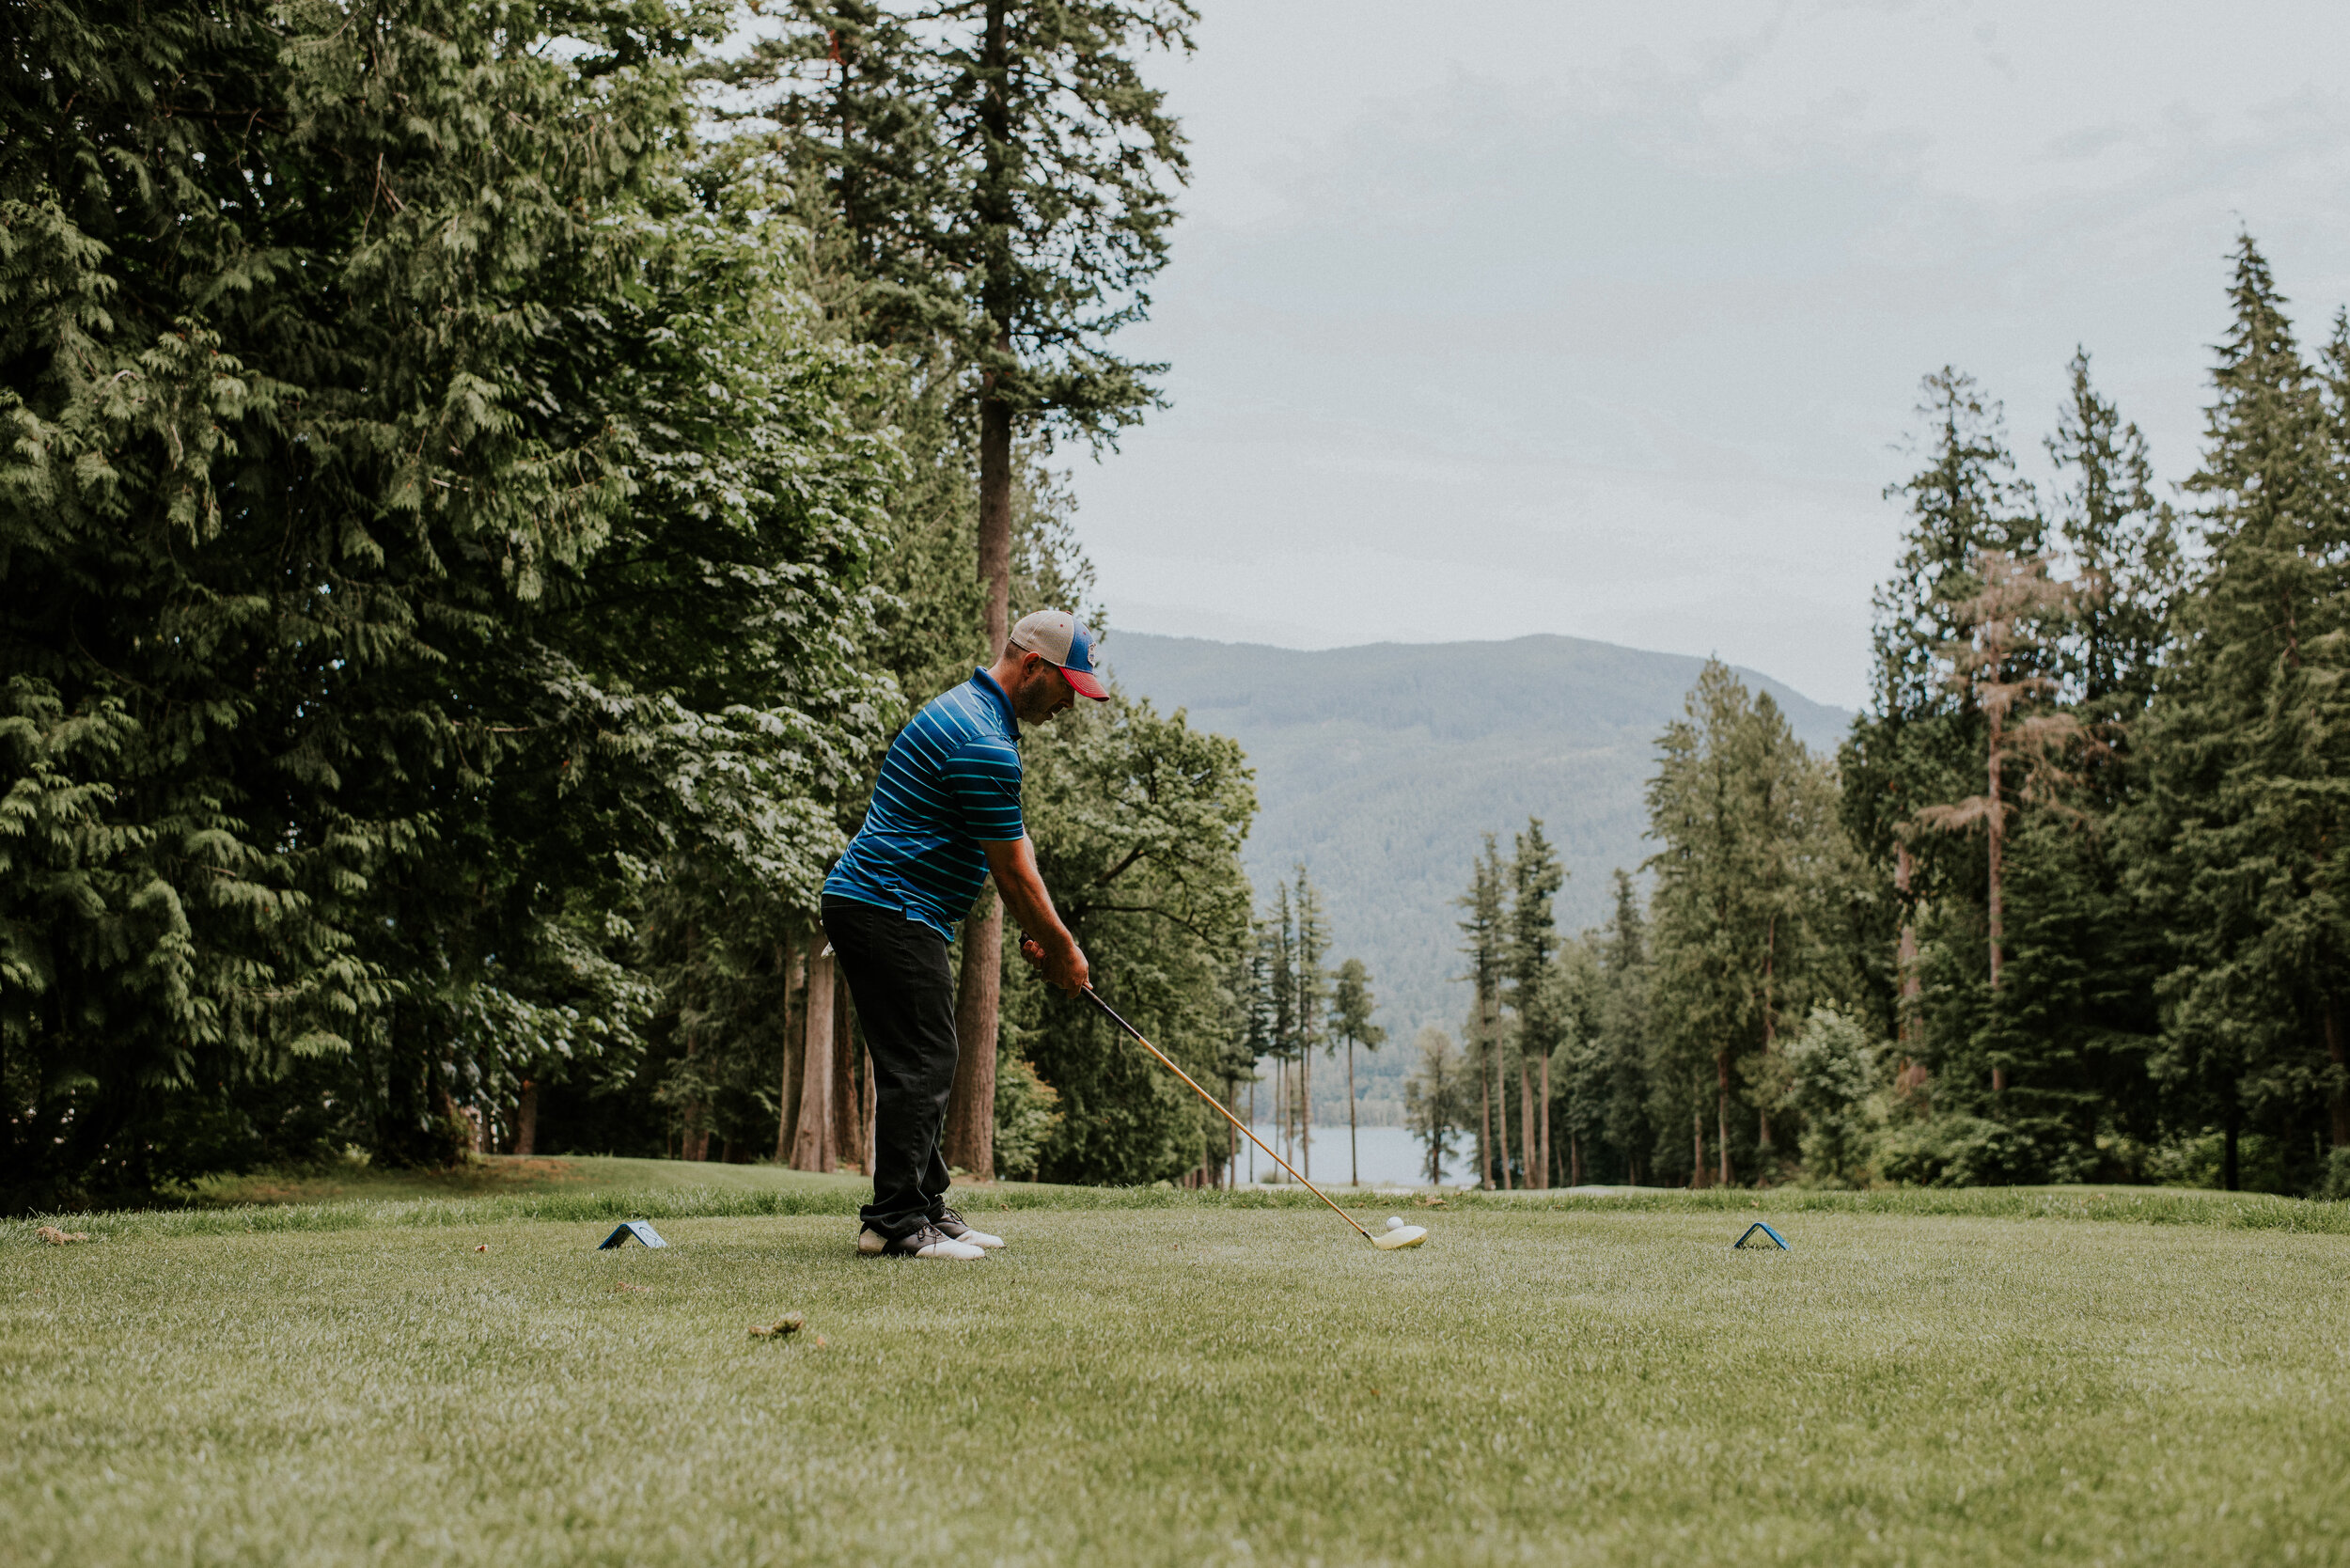 Golfing in the valley - The lush greenery of the Fraser Valley is home to over 15 golf courses that are open year-round! Regardless of your swing, there is a tee waiting for you. Explore courses in each community:Abbotsford   Chilliwack   Harrison   Hope